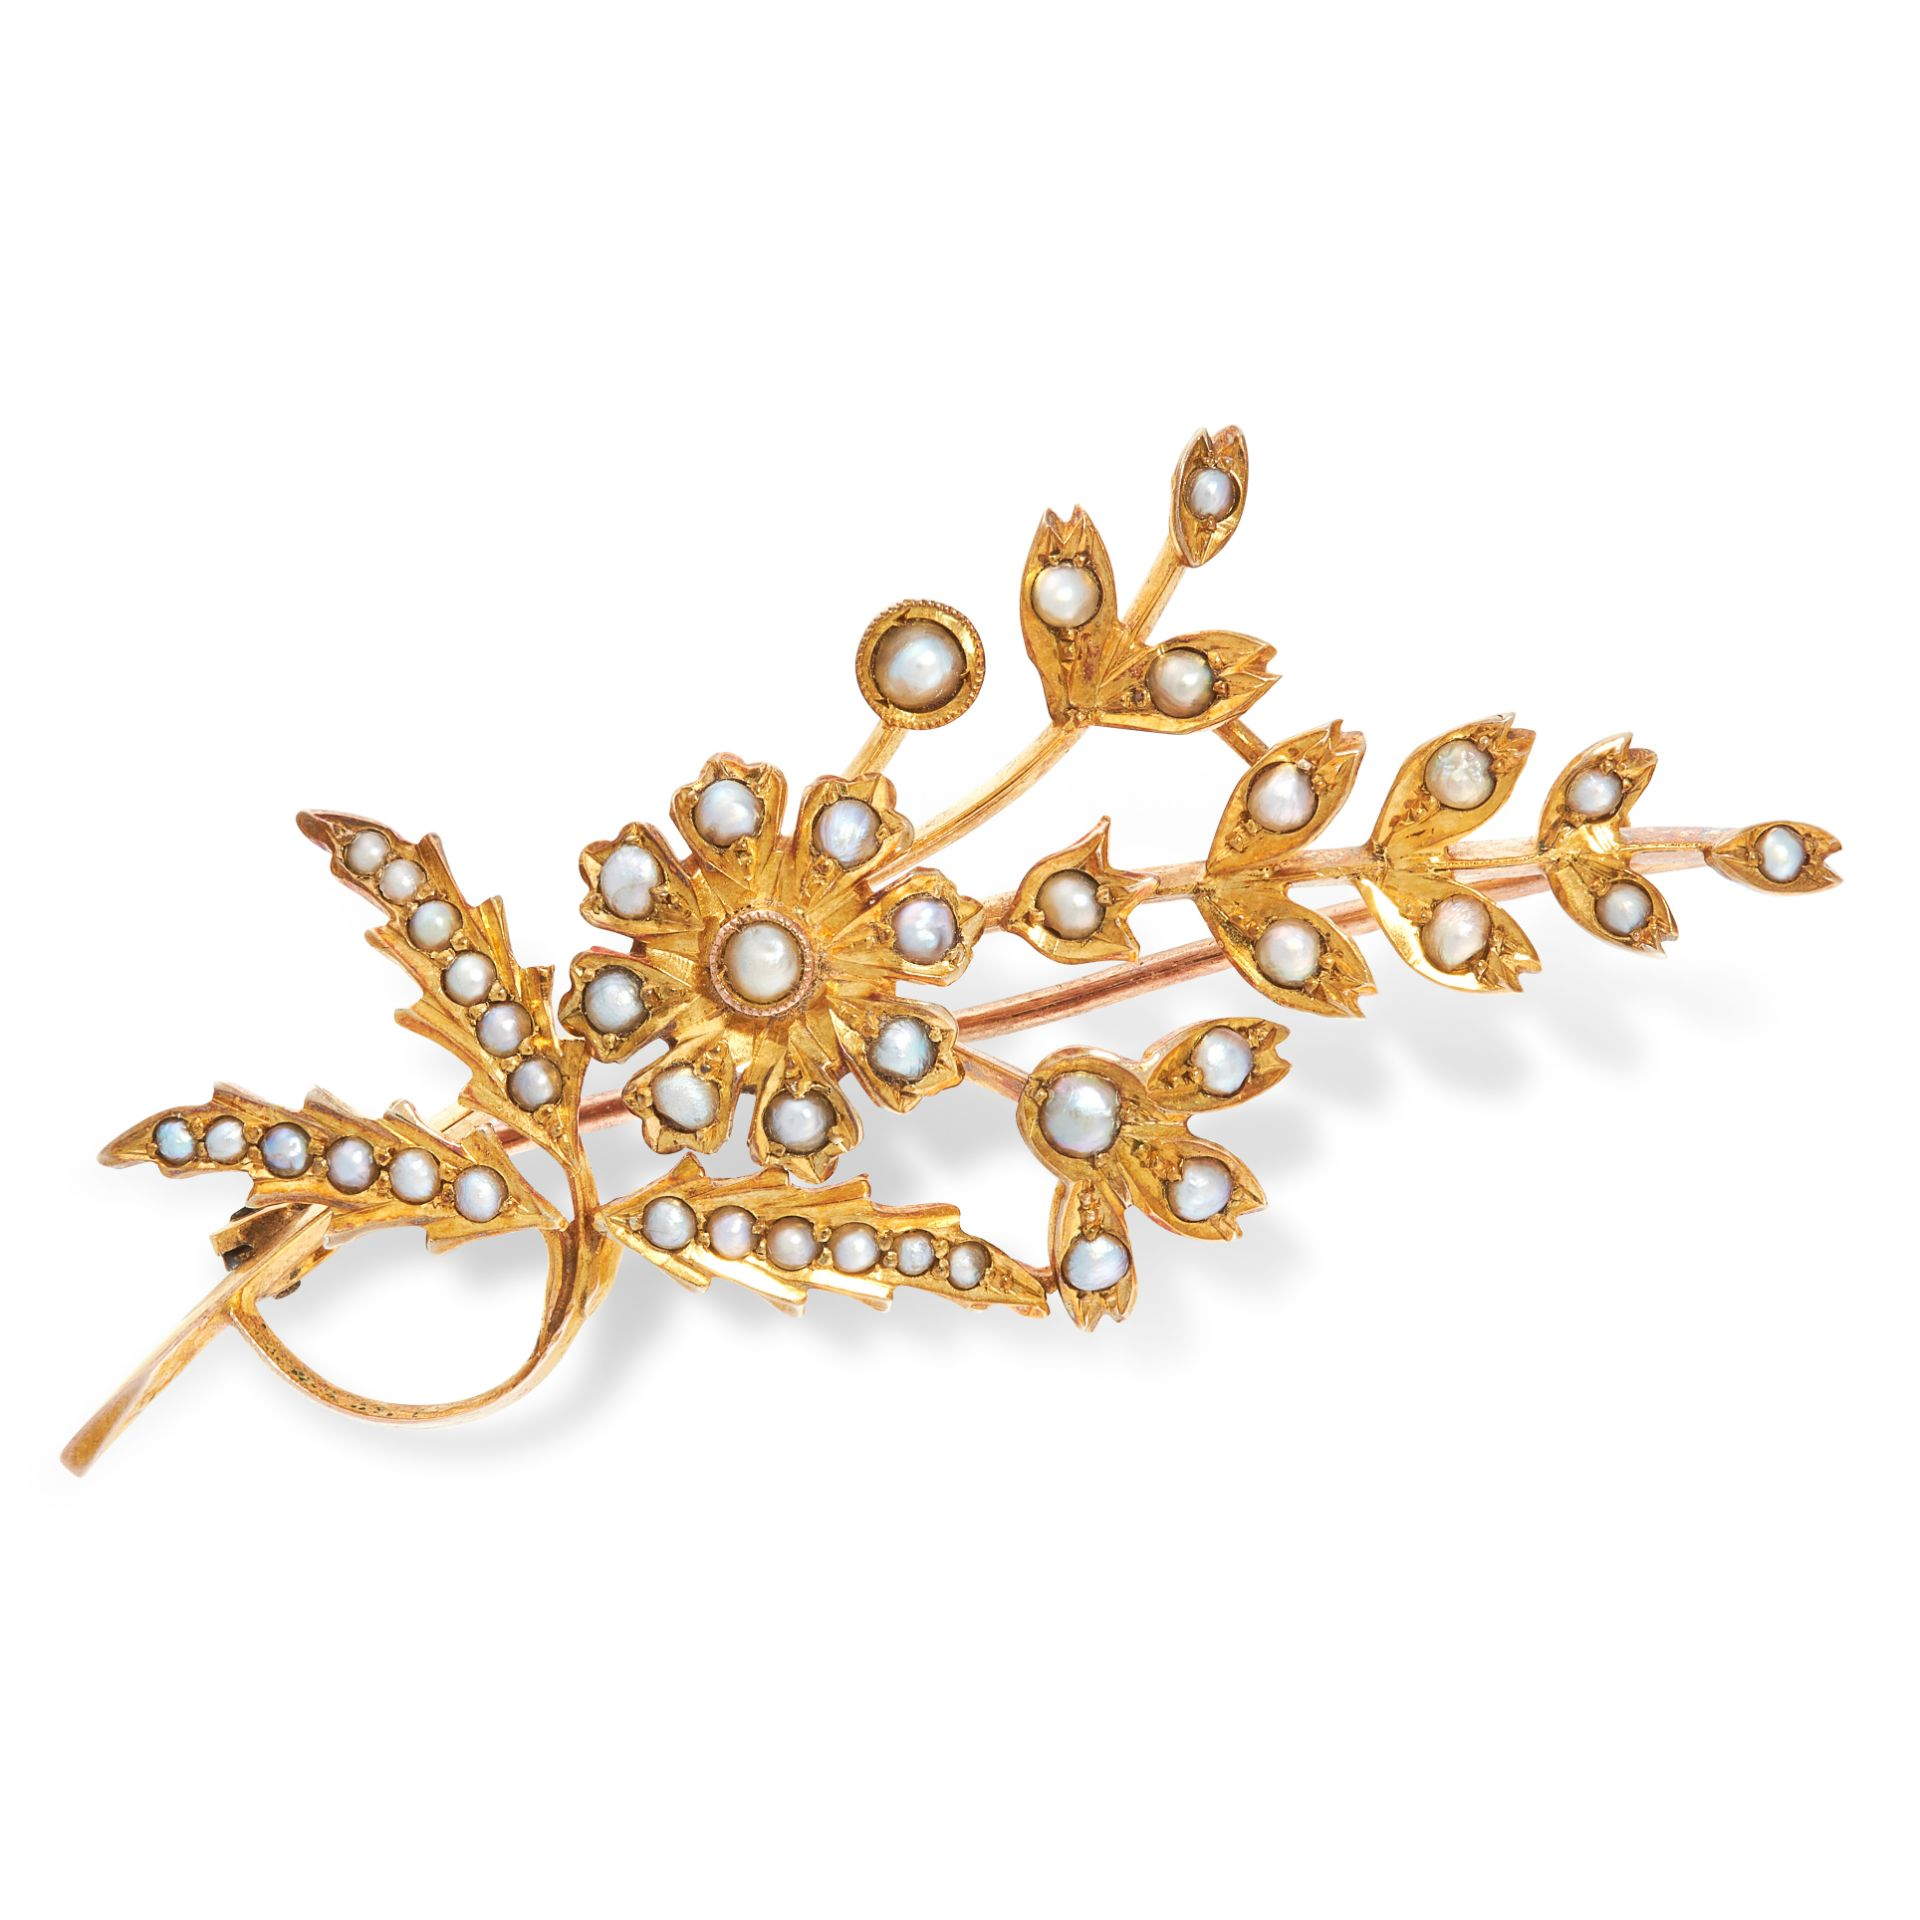 AN ANTIQUE PEARL FLOWER SPRAY BROOCH in yellow gold, in the form of a bouquet of flowers set with